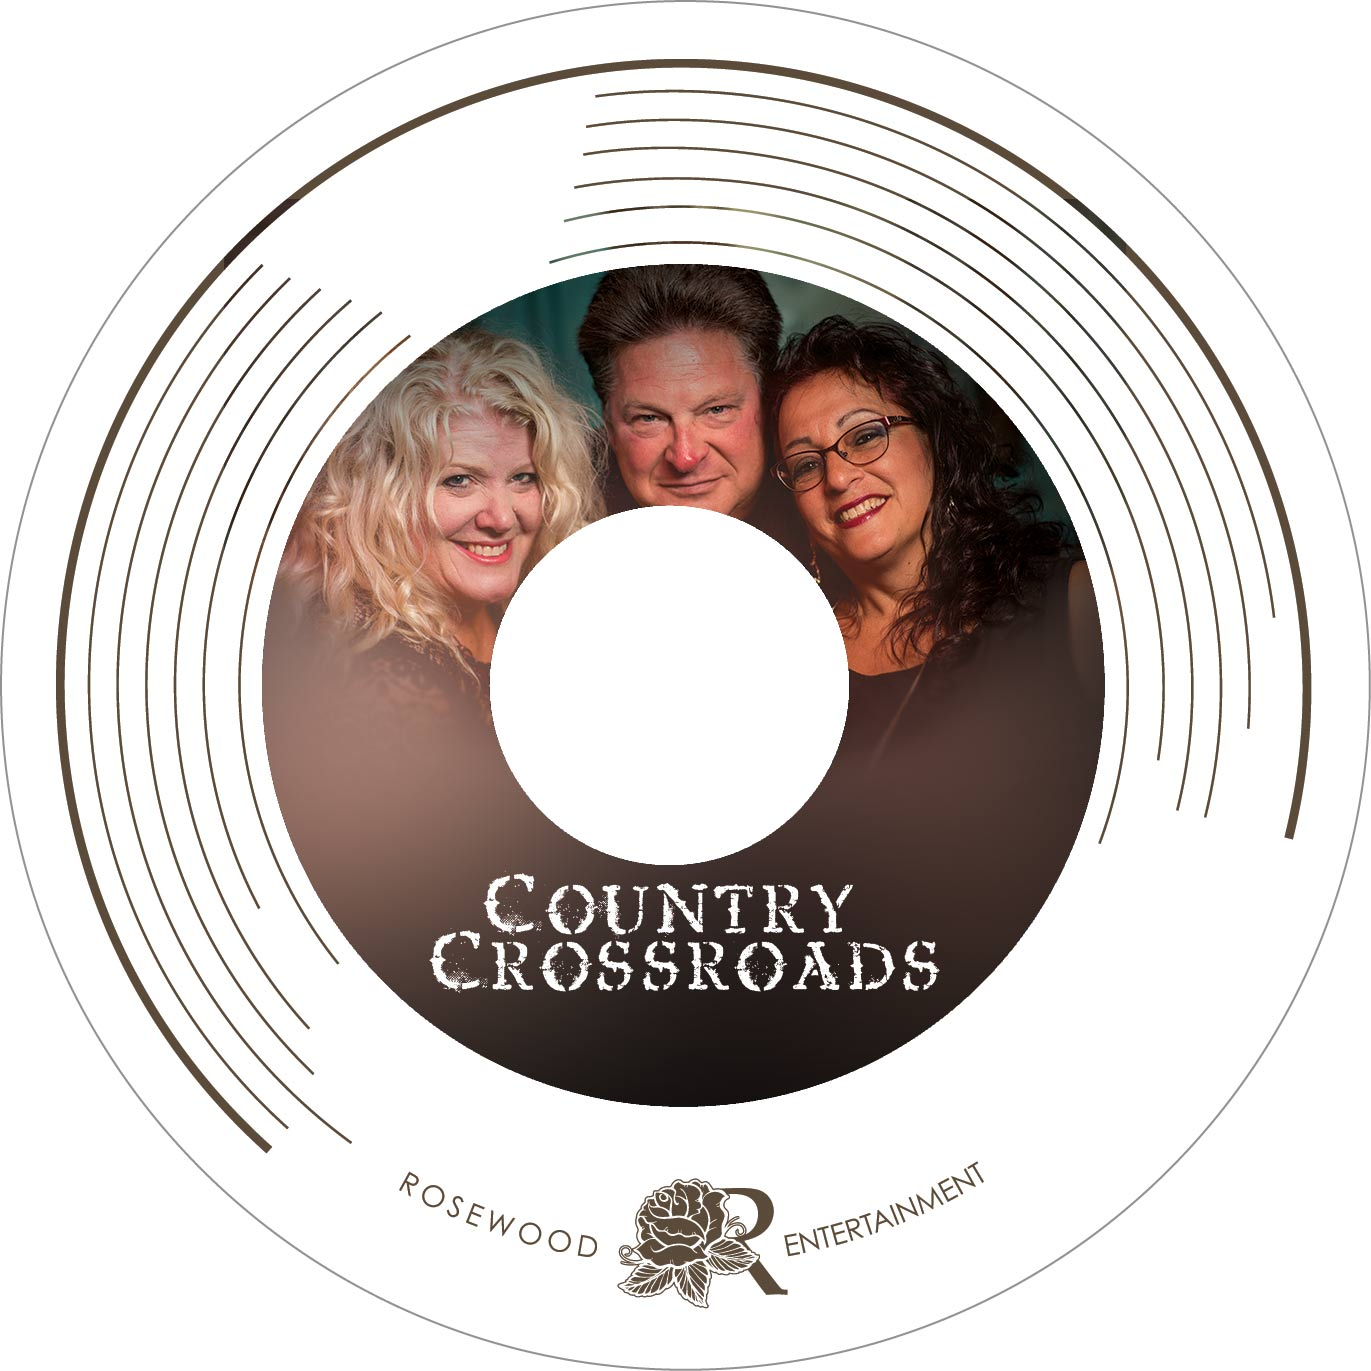 Country-Crossroads-Disc-01blurred